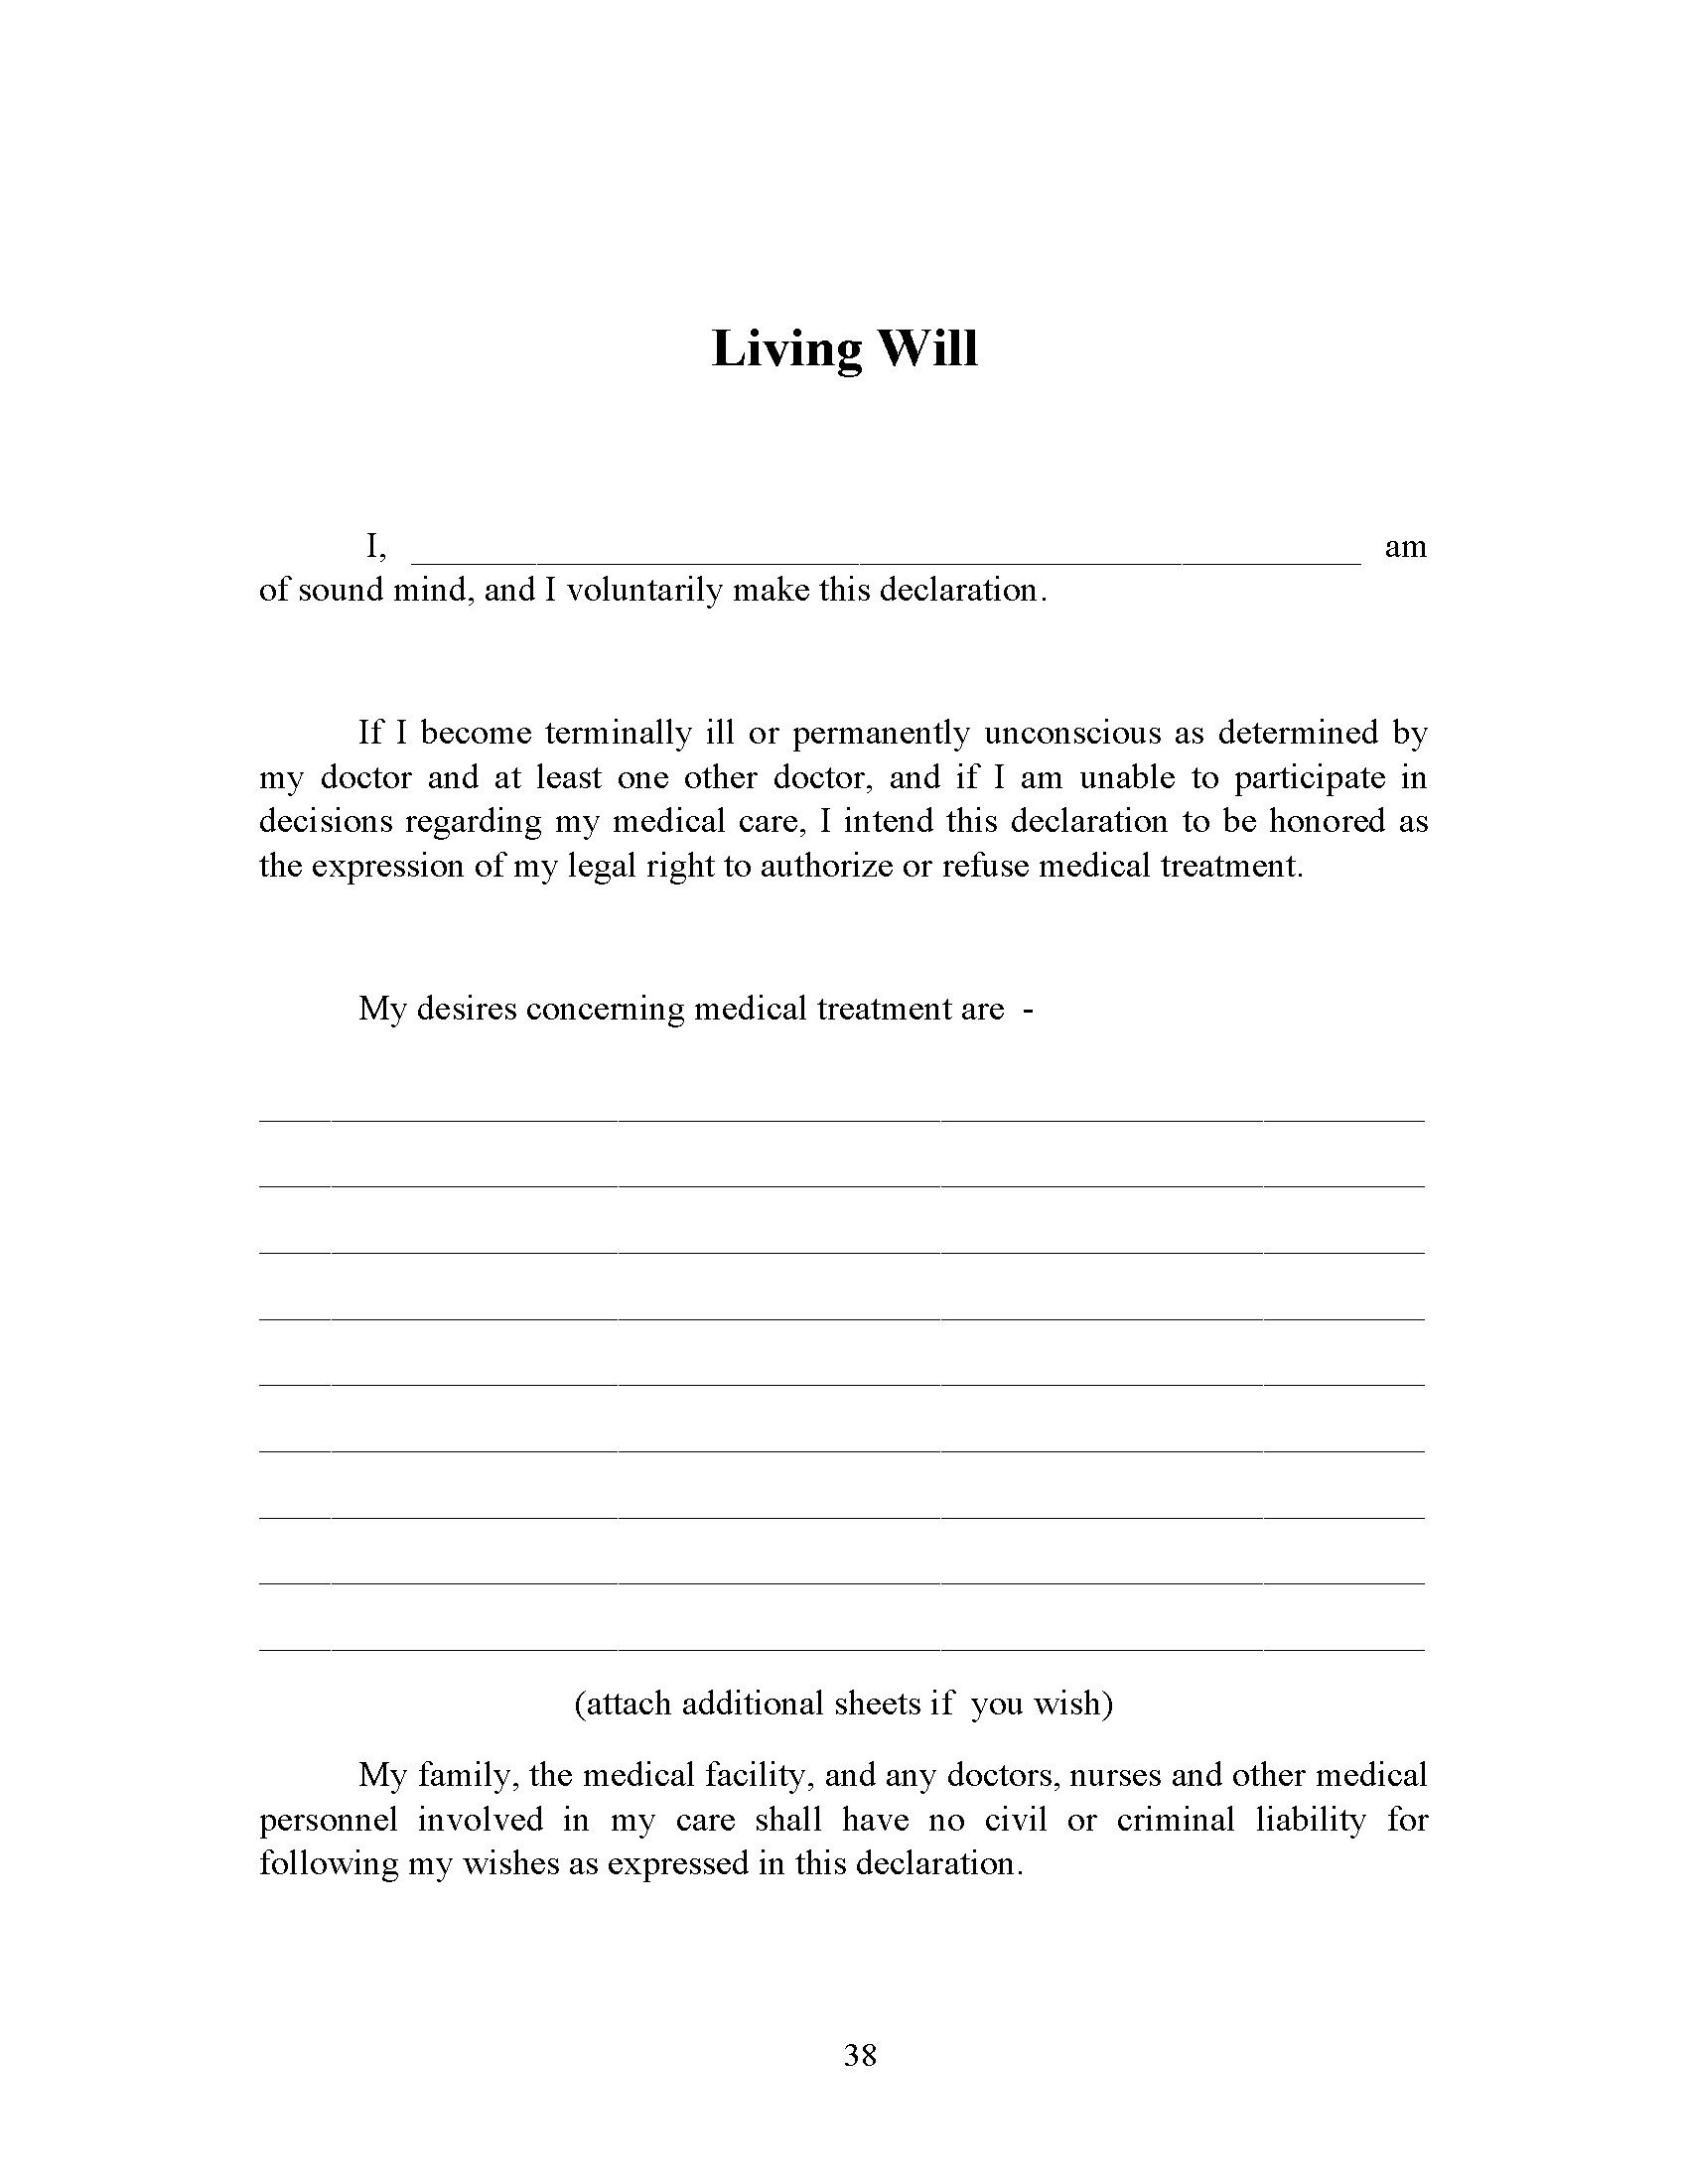 Michigan Living Will Form Fillable PDF Free Printable